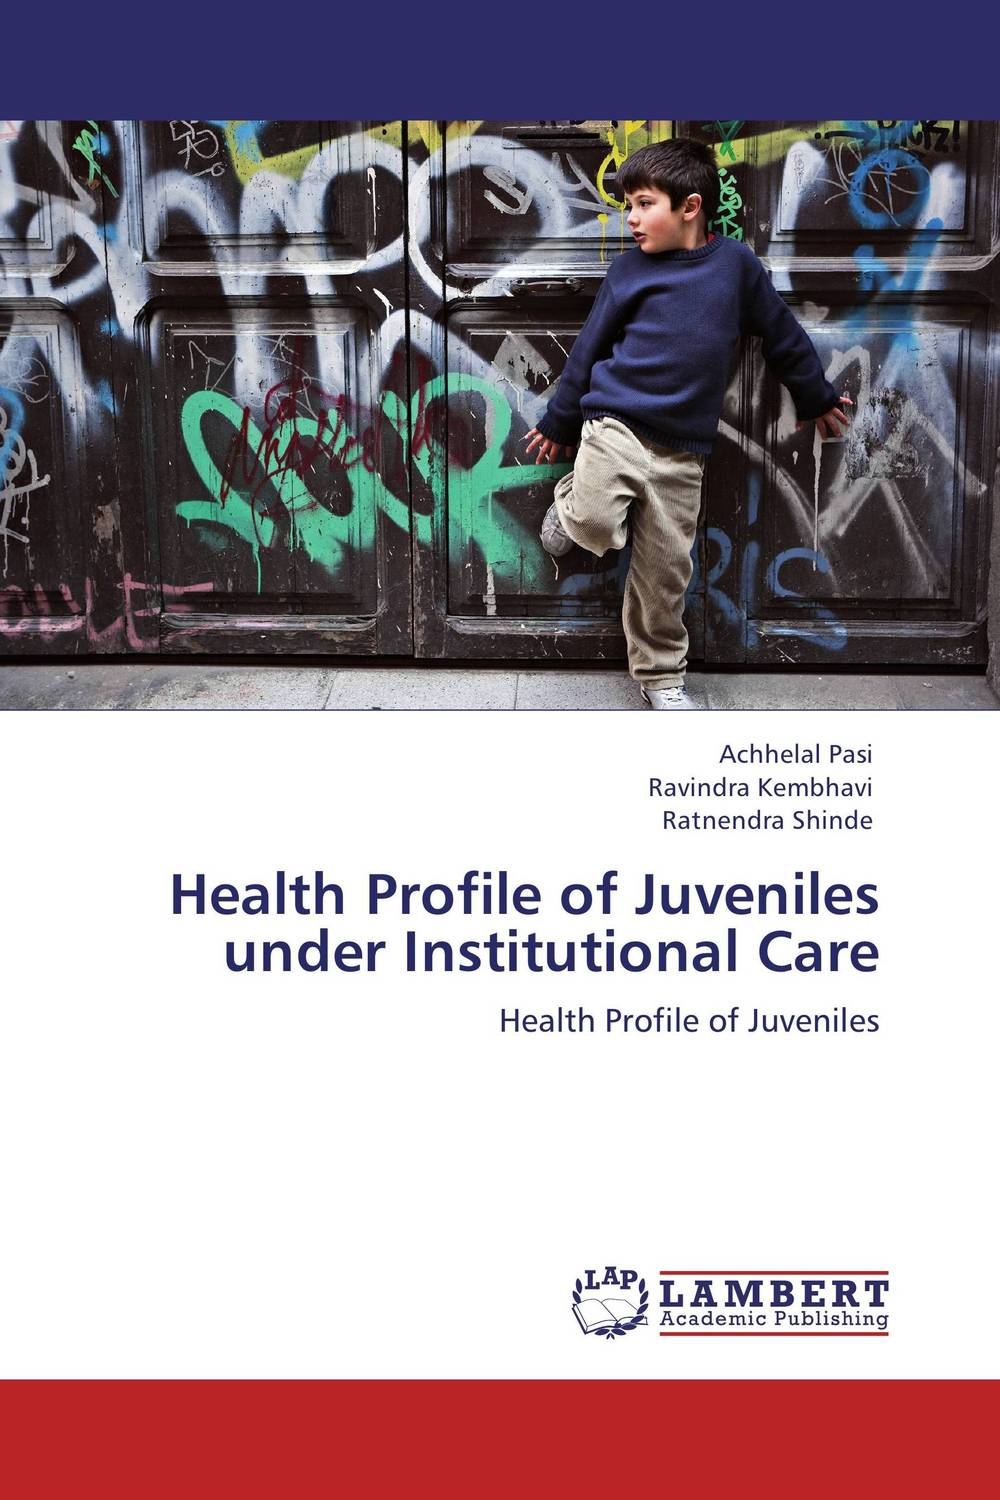 Health Profile of Juveniles under Institutional Care